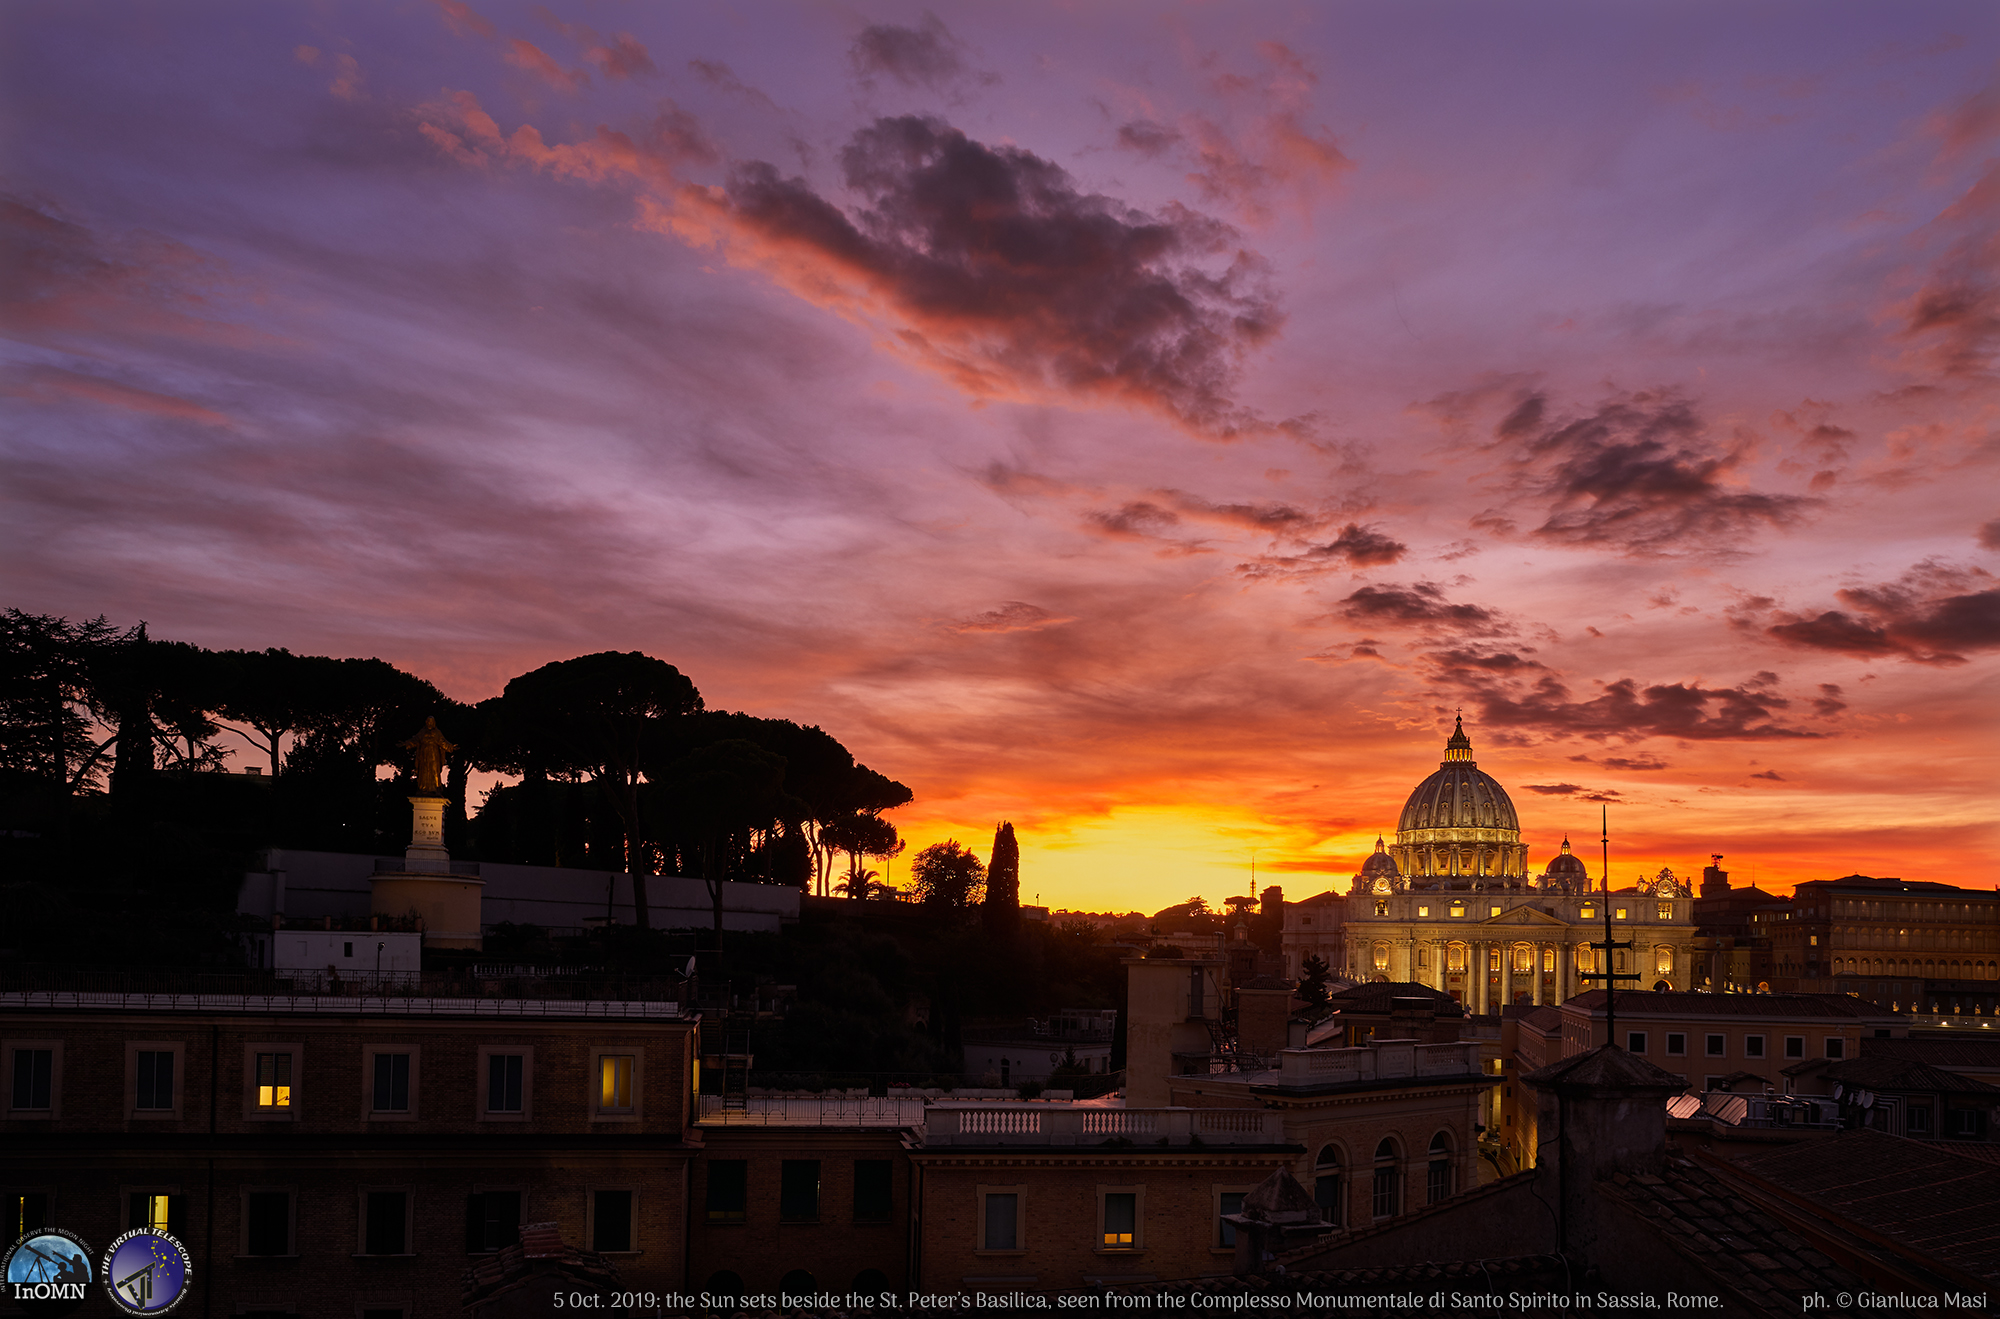 """The sunset, as seen from the """"Santo Spirito""""'s tower: St. Peter's Basilica dominates the western sky, with unbelievable colors all around."""